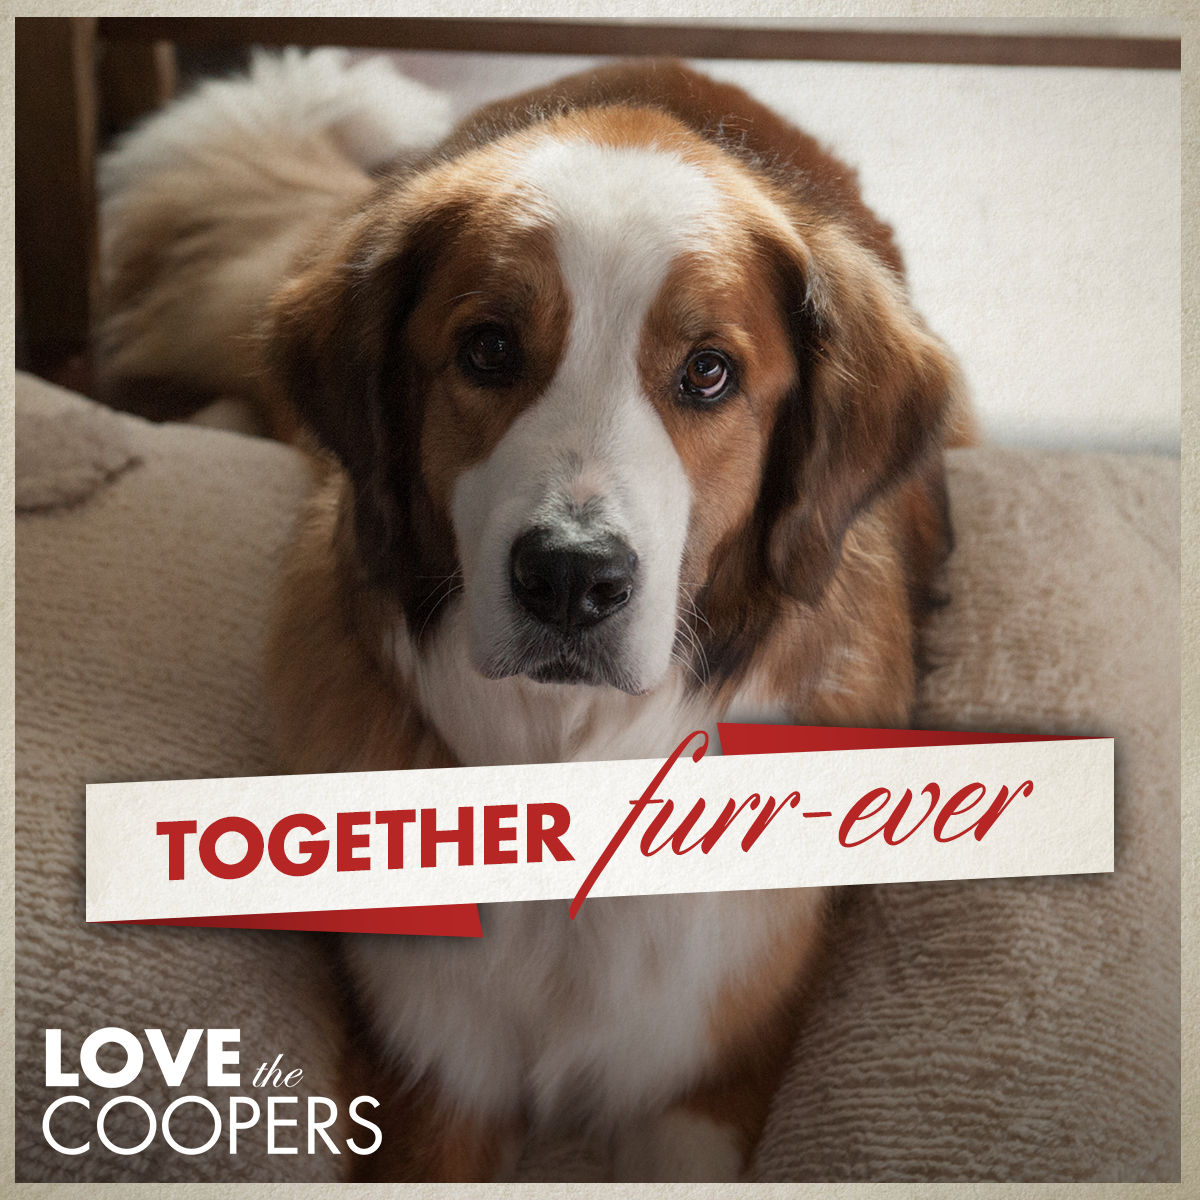 Rags knows that family always has each other's back. #LoveTheCoopers https://t.co/uU3GjKgW2J